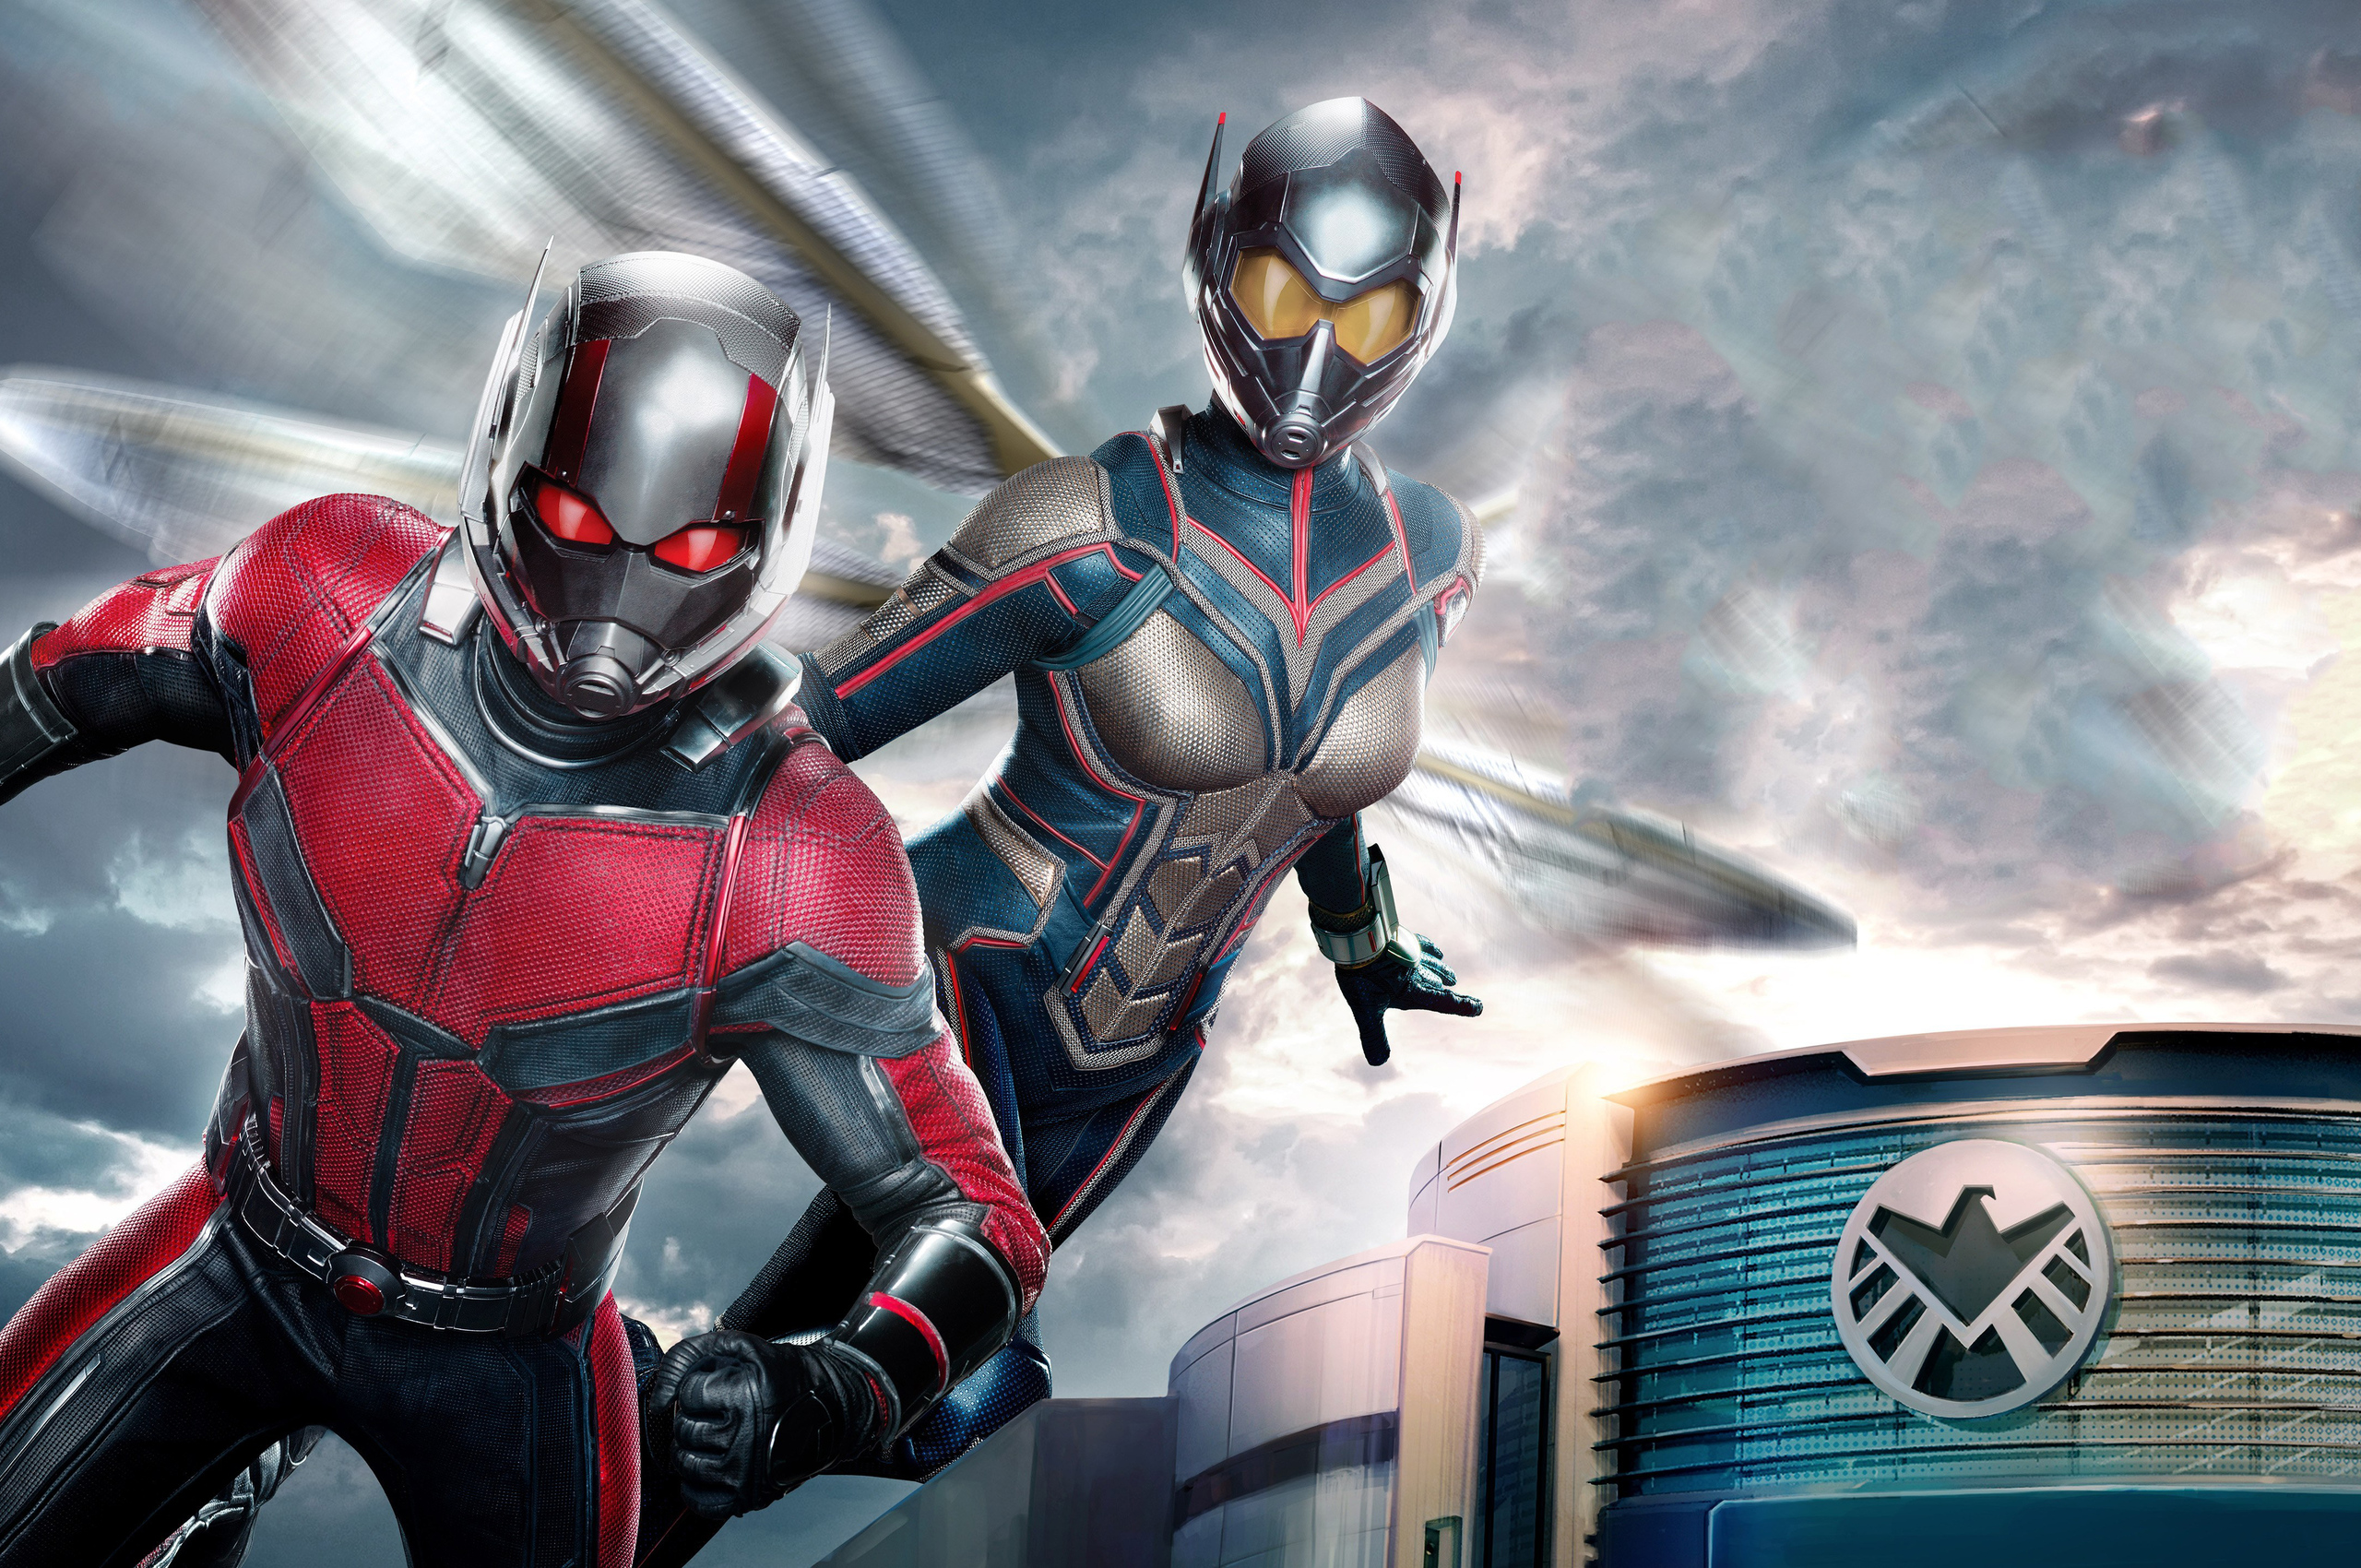 ant-man-and-the-wasp-5k-nm.jpg